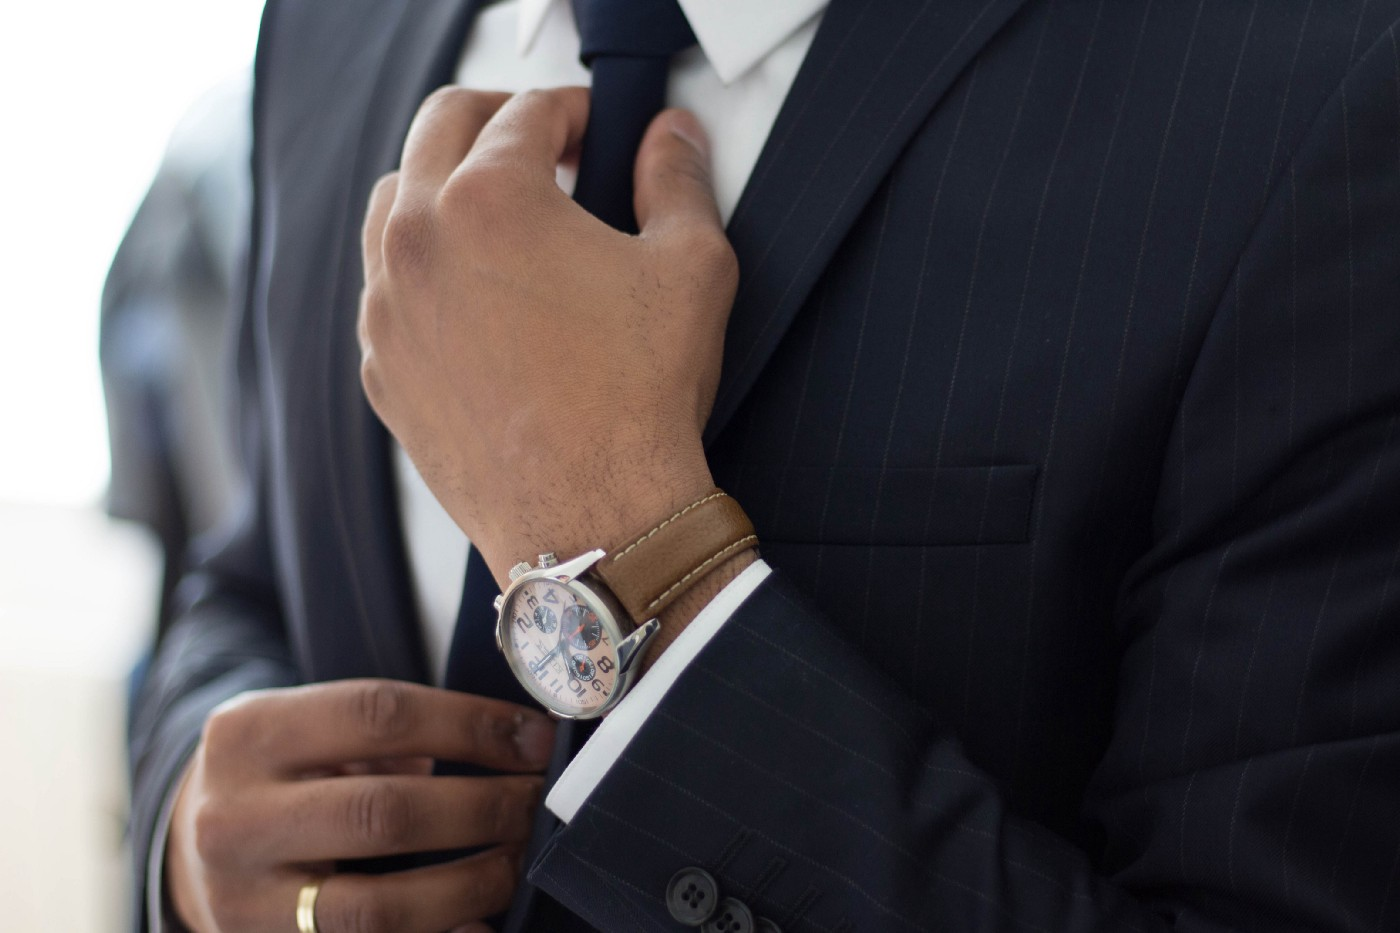 A man in a suit tightens his tie. He's wearing an expensive watch on his wrist.